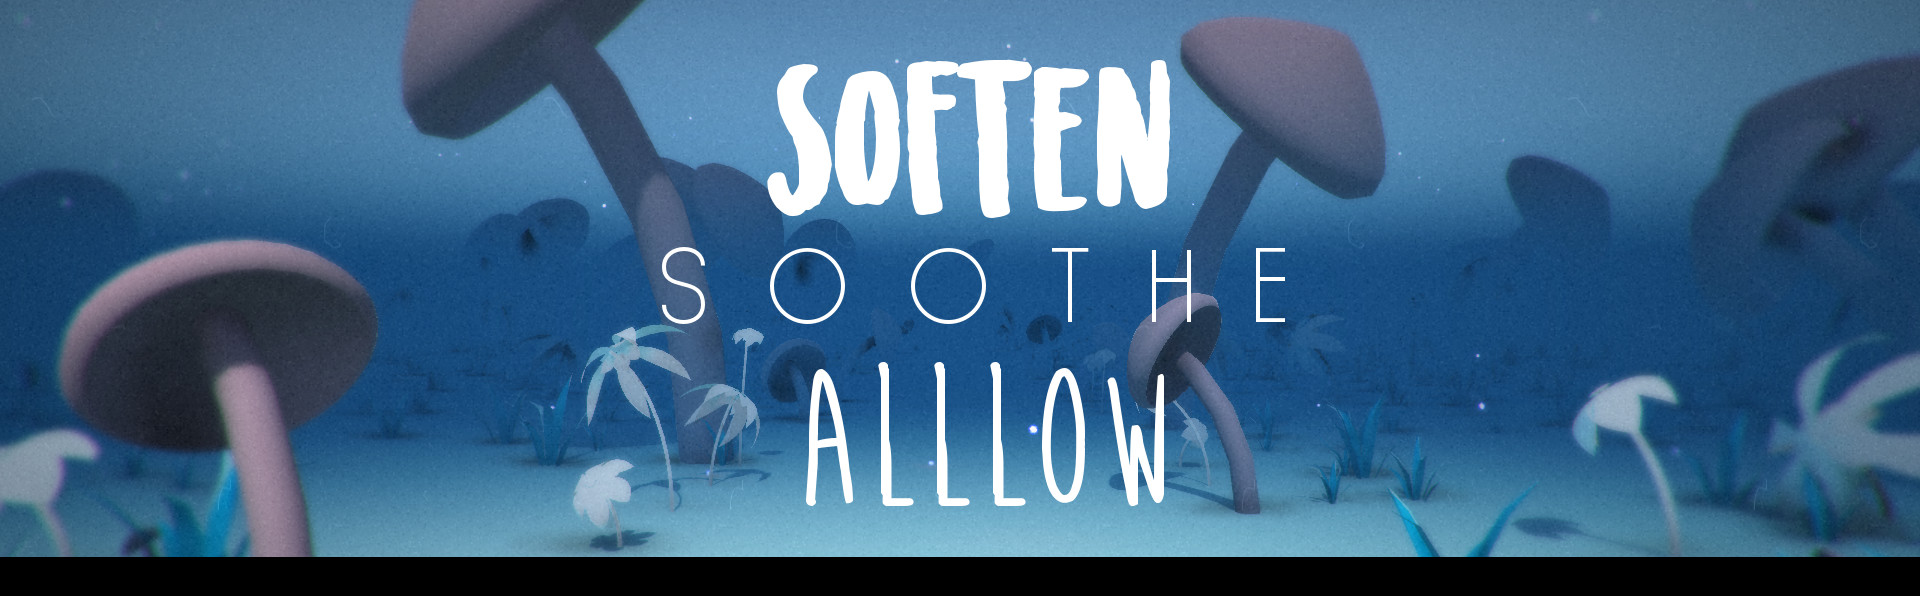 Soften, Soothe, Allow